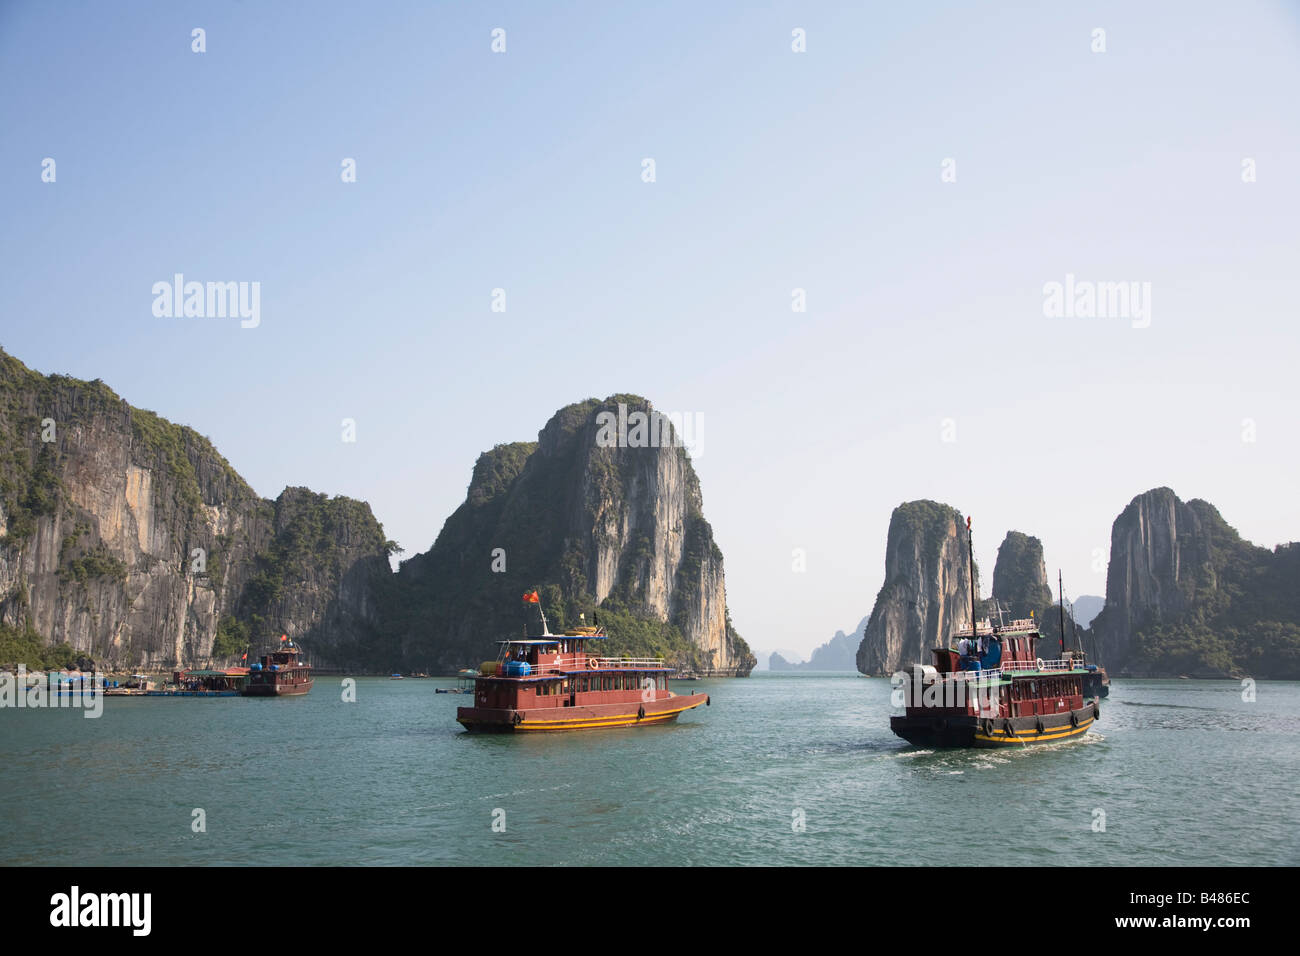 Junks and limestone karsts on the waters of Halong Bay, Vietnam - Stock Image